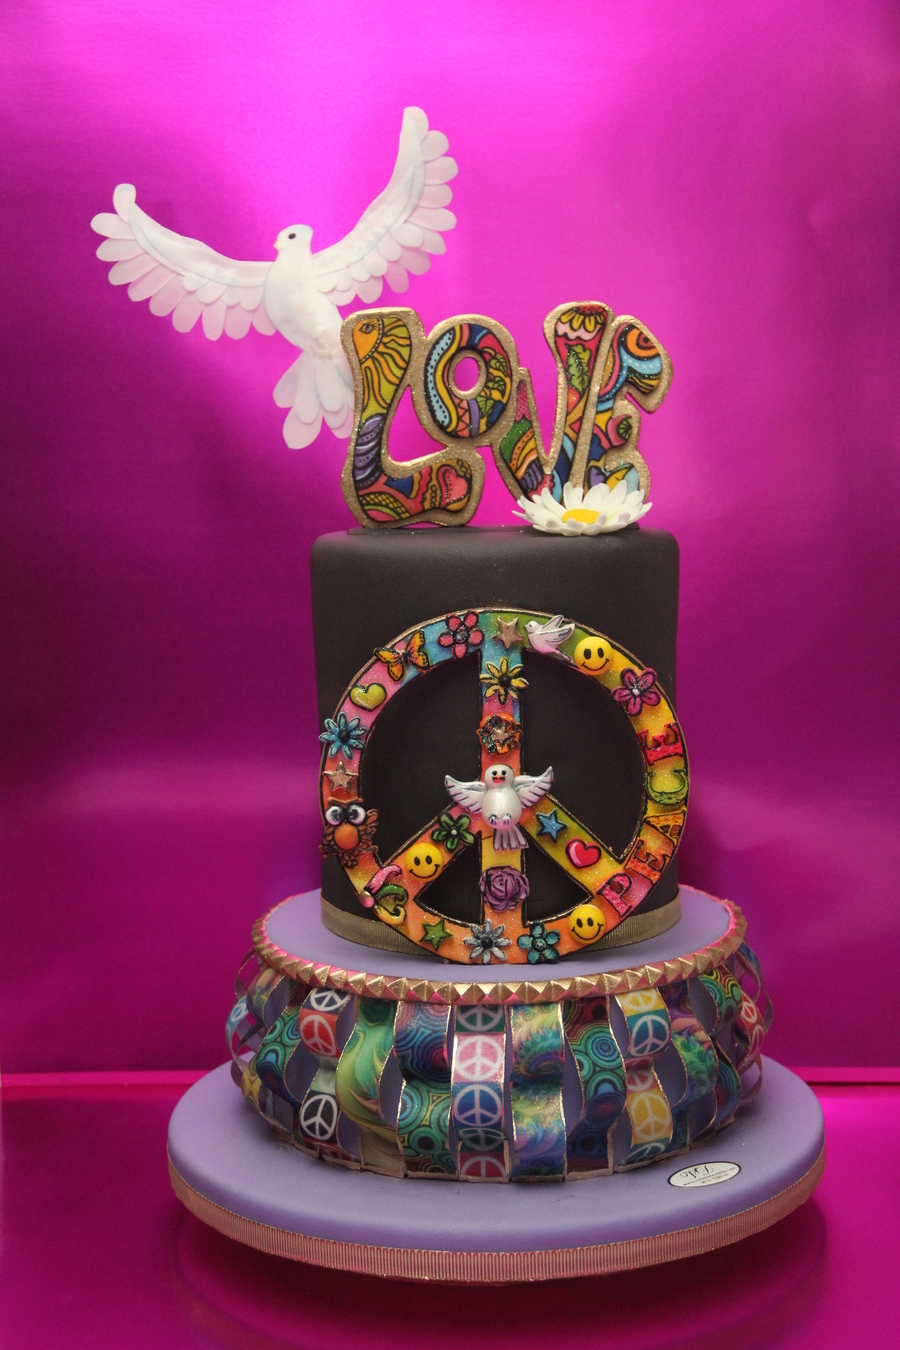 Retro Birthday Cake Word Love And Peace Symbol Made Of